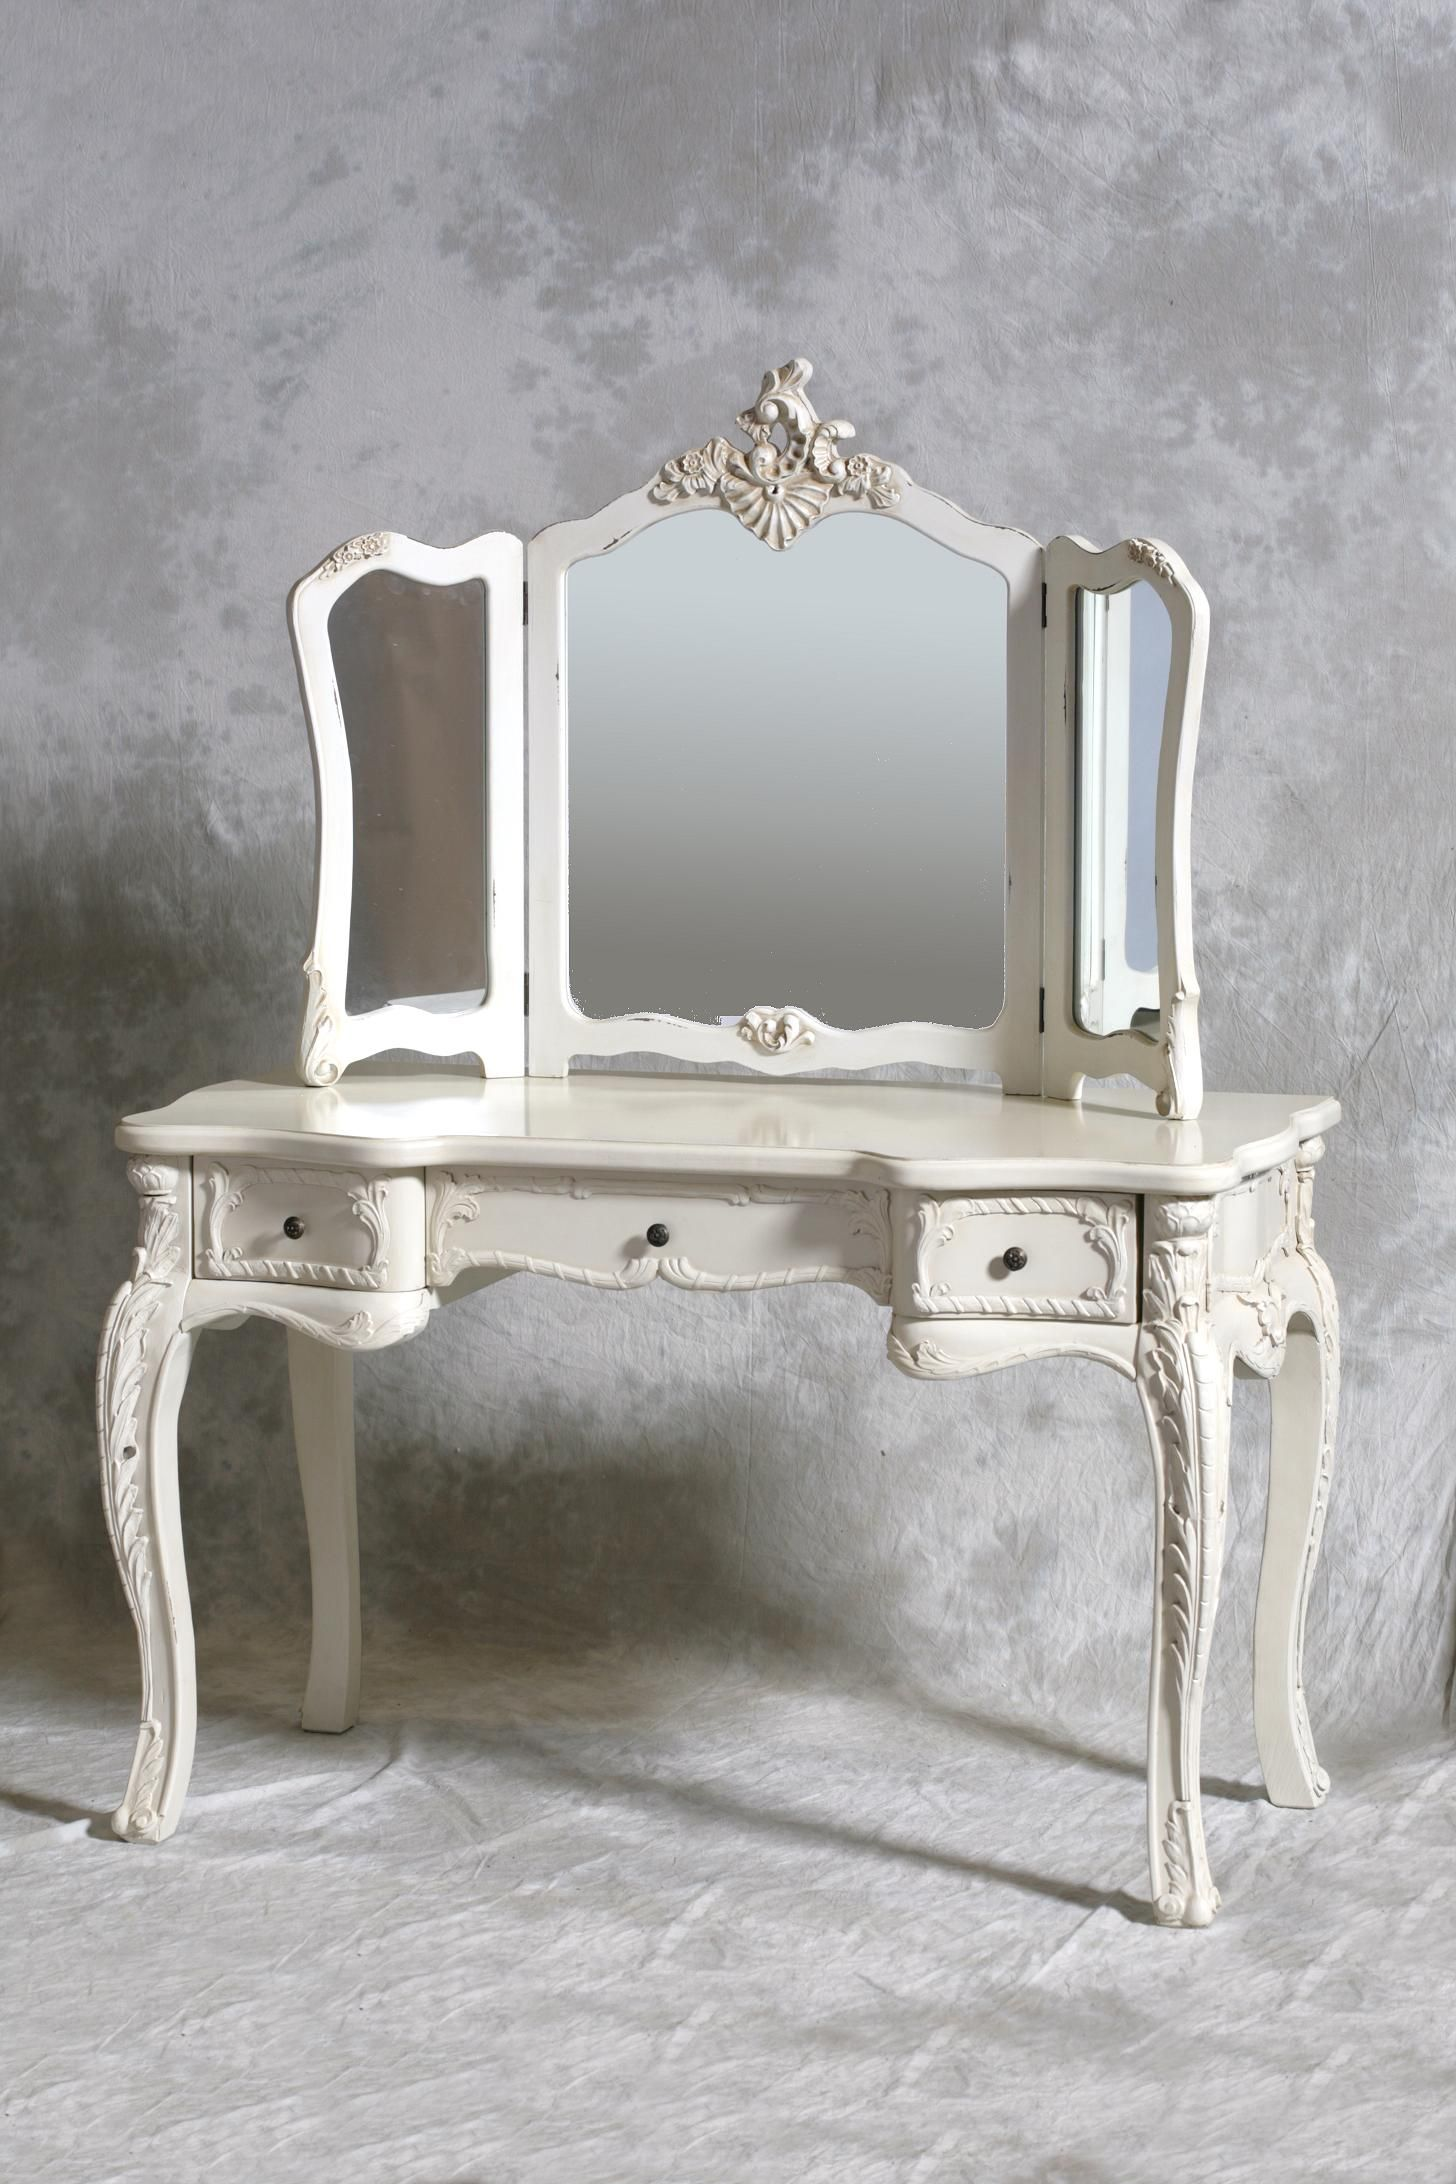 A chateau french antique style cream dressing table 3 fold mirror is a gorgeous french